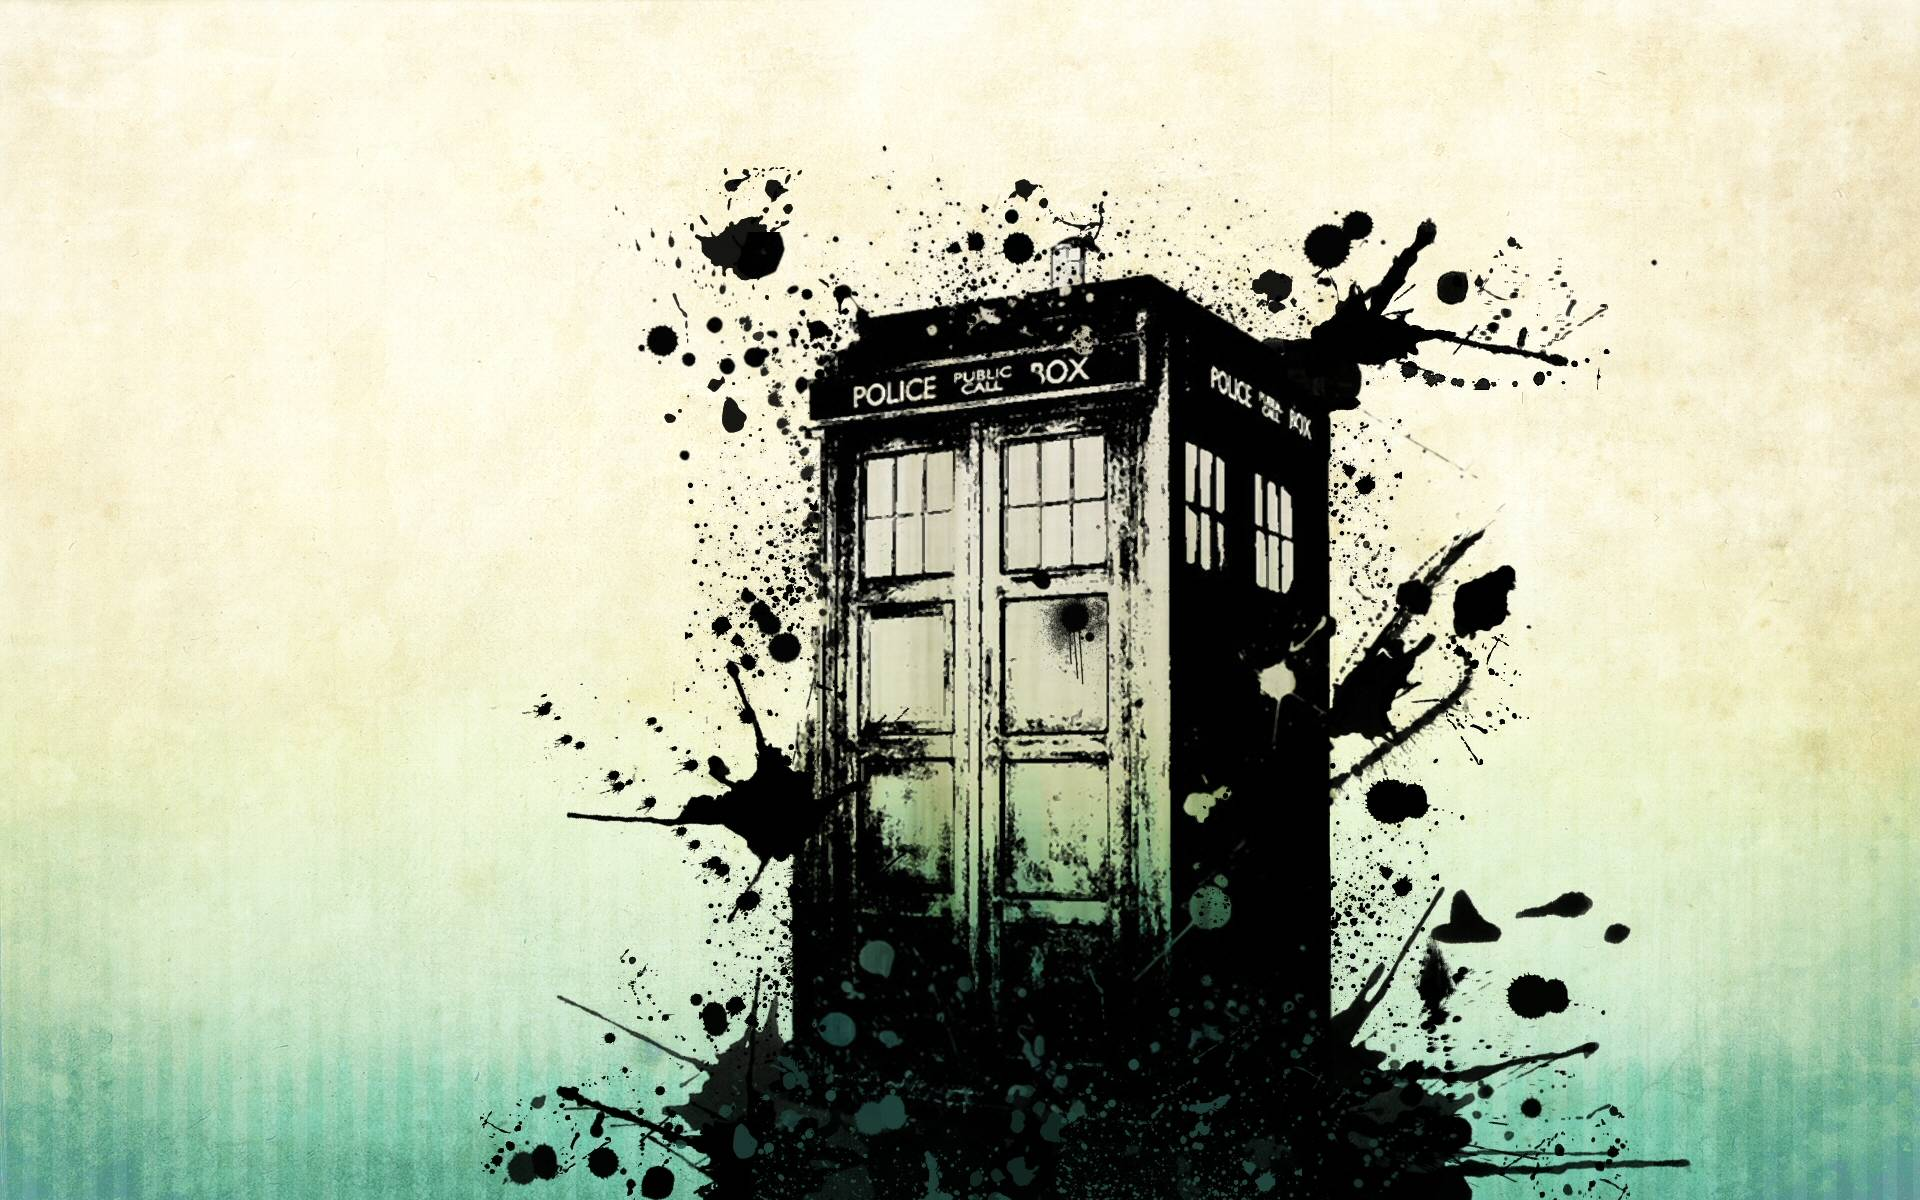 tardis images hd wallpaper - photo #21